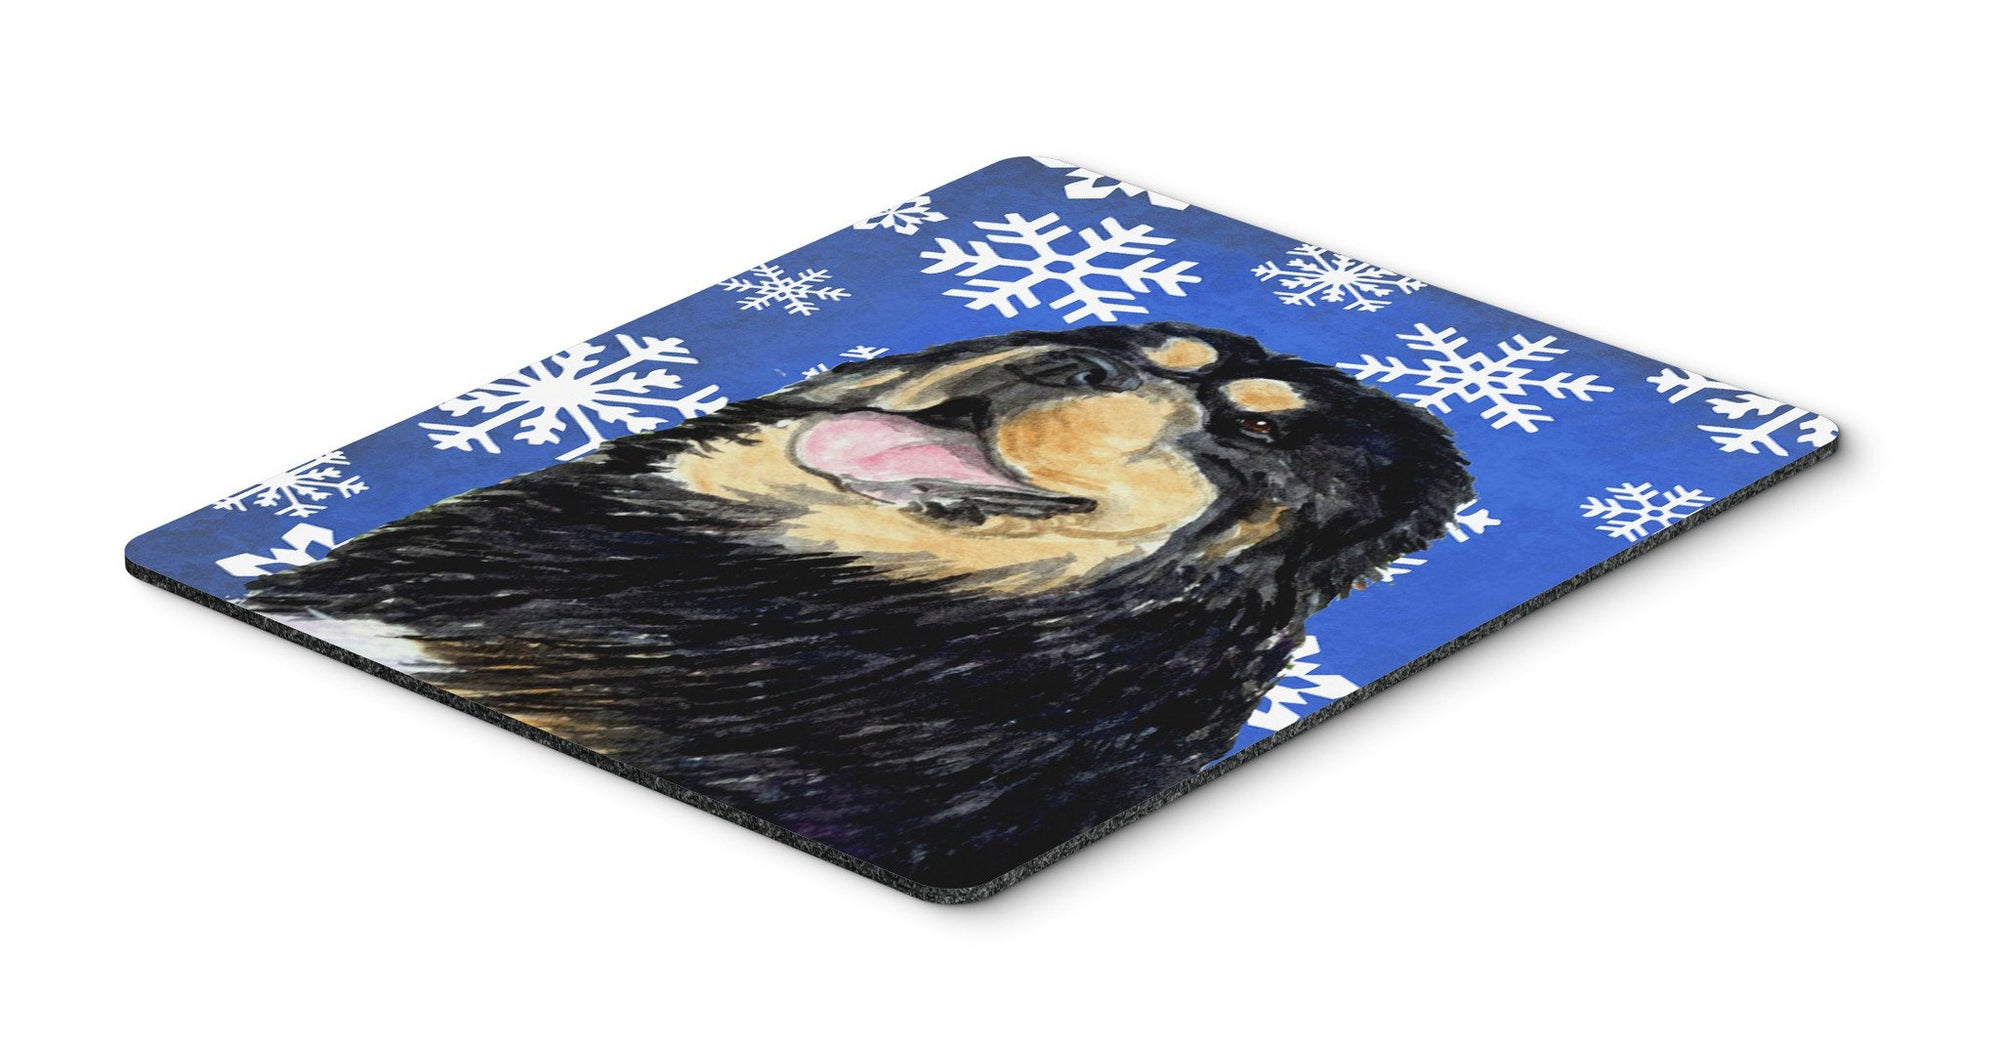 Tibetan Mastiff Winter Snowflakes Holiday Mouse Pad, Hot Pad or Trivet by Caroline's Treasures